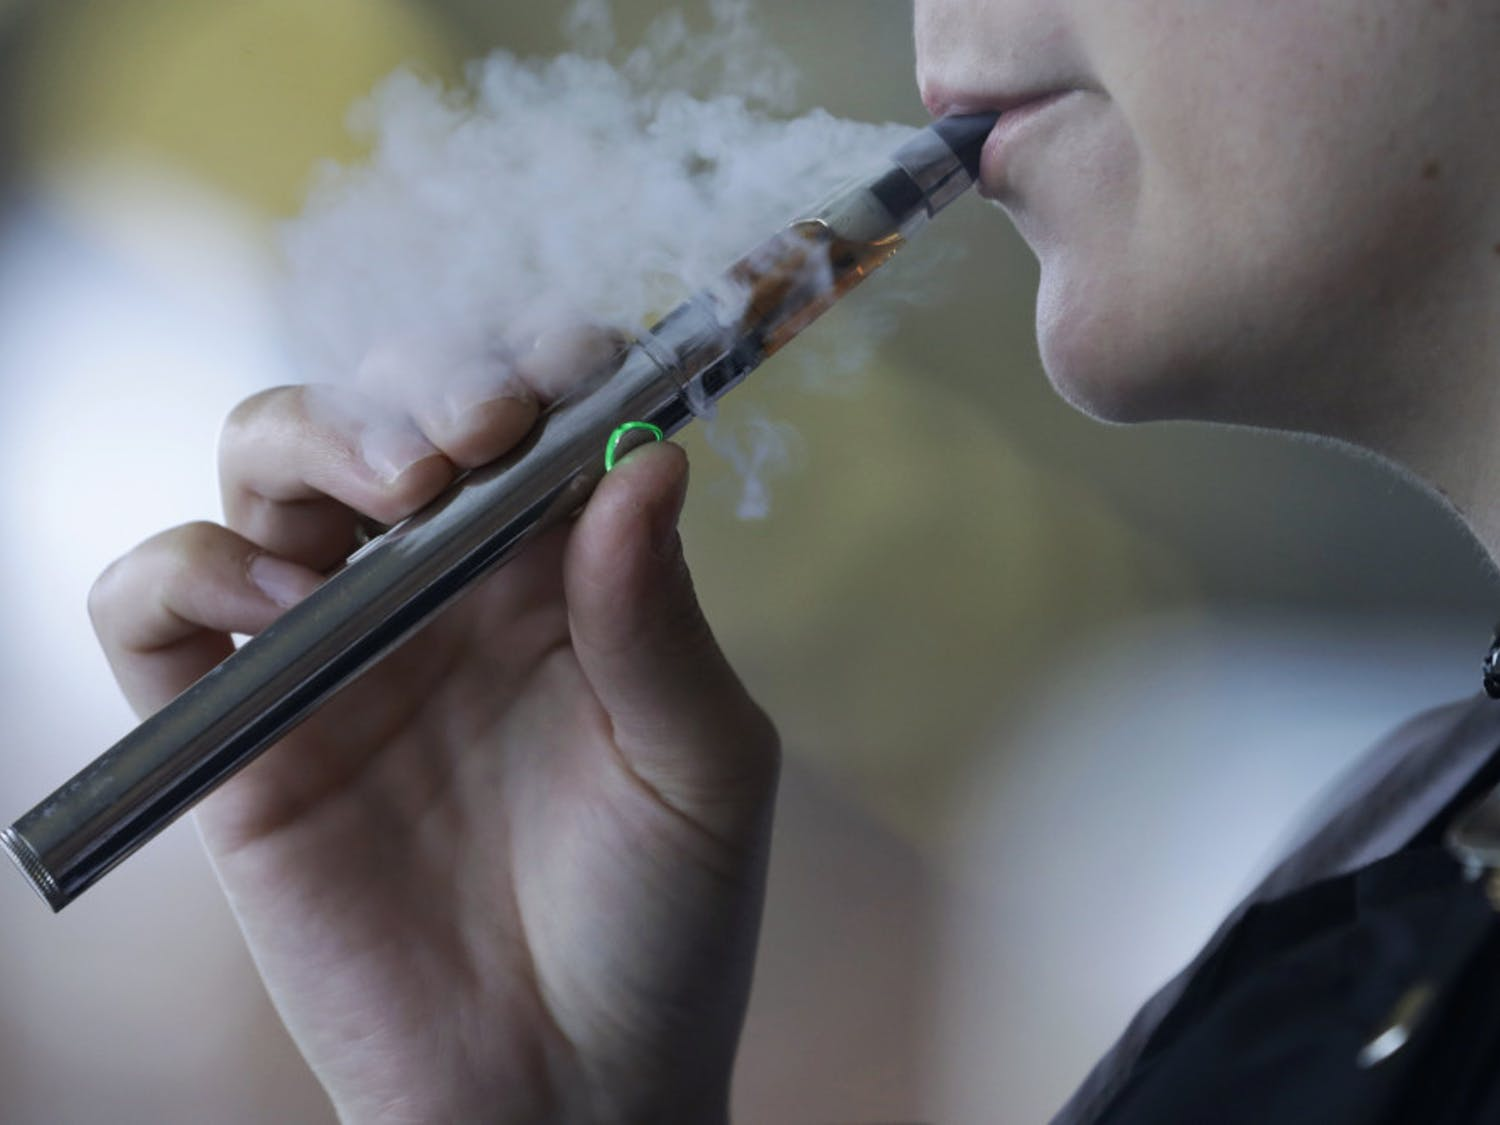 FILE - In this Friday, Oct. 4, 2019, file photo, a woman using an electronic cigarette exhales in Mayfield Heights, Ohio. A Michigan judge is blocking the state's two-week-old ban on flavored e-cigarettes. Court of Claims Judge Cynthia Stephens issued a preliminary injunction Tuesday, Oct. 15, 2019. She says Michigan Gov. Gretchen Whitmer's administration's delay in implementing the ban undercut its position that emergency rules were needed. (AP Photo/Tony Dejak, File)